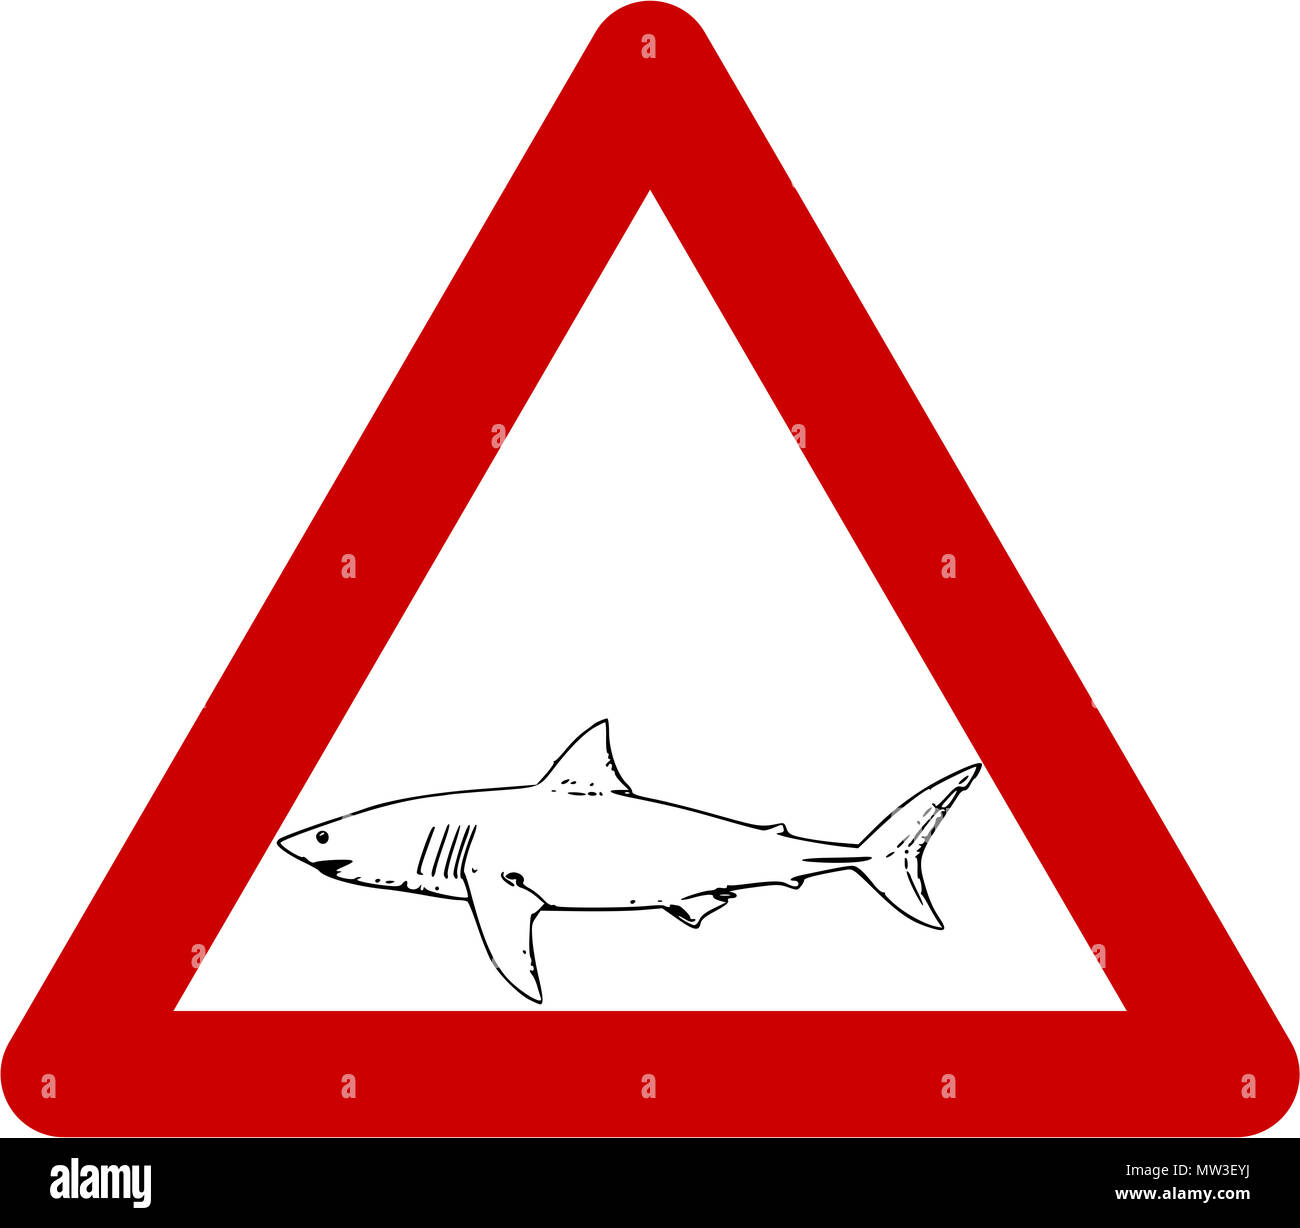 Warning Sign With Shark Symbol Stock Photo 187547686 Alamy